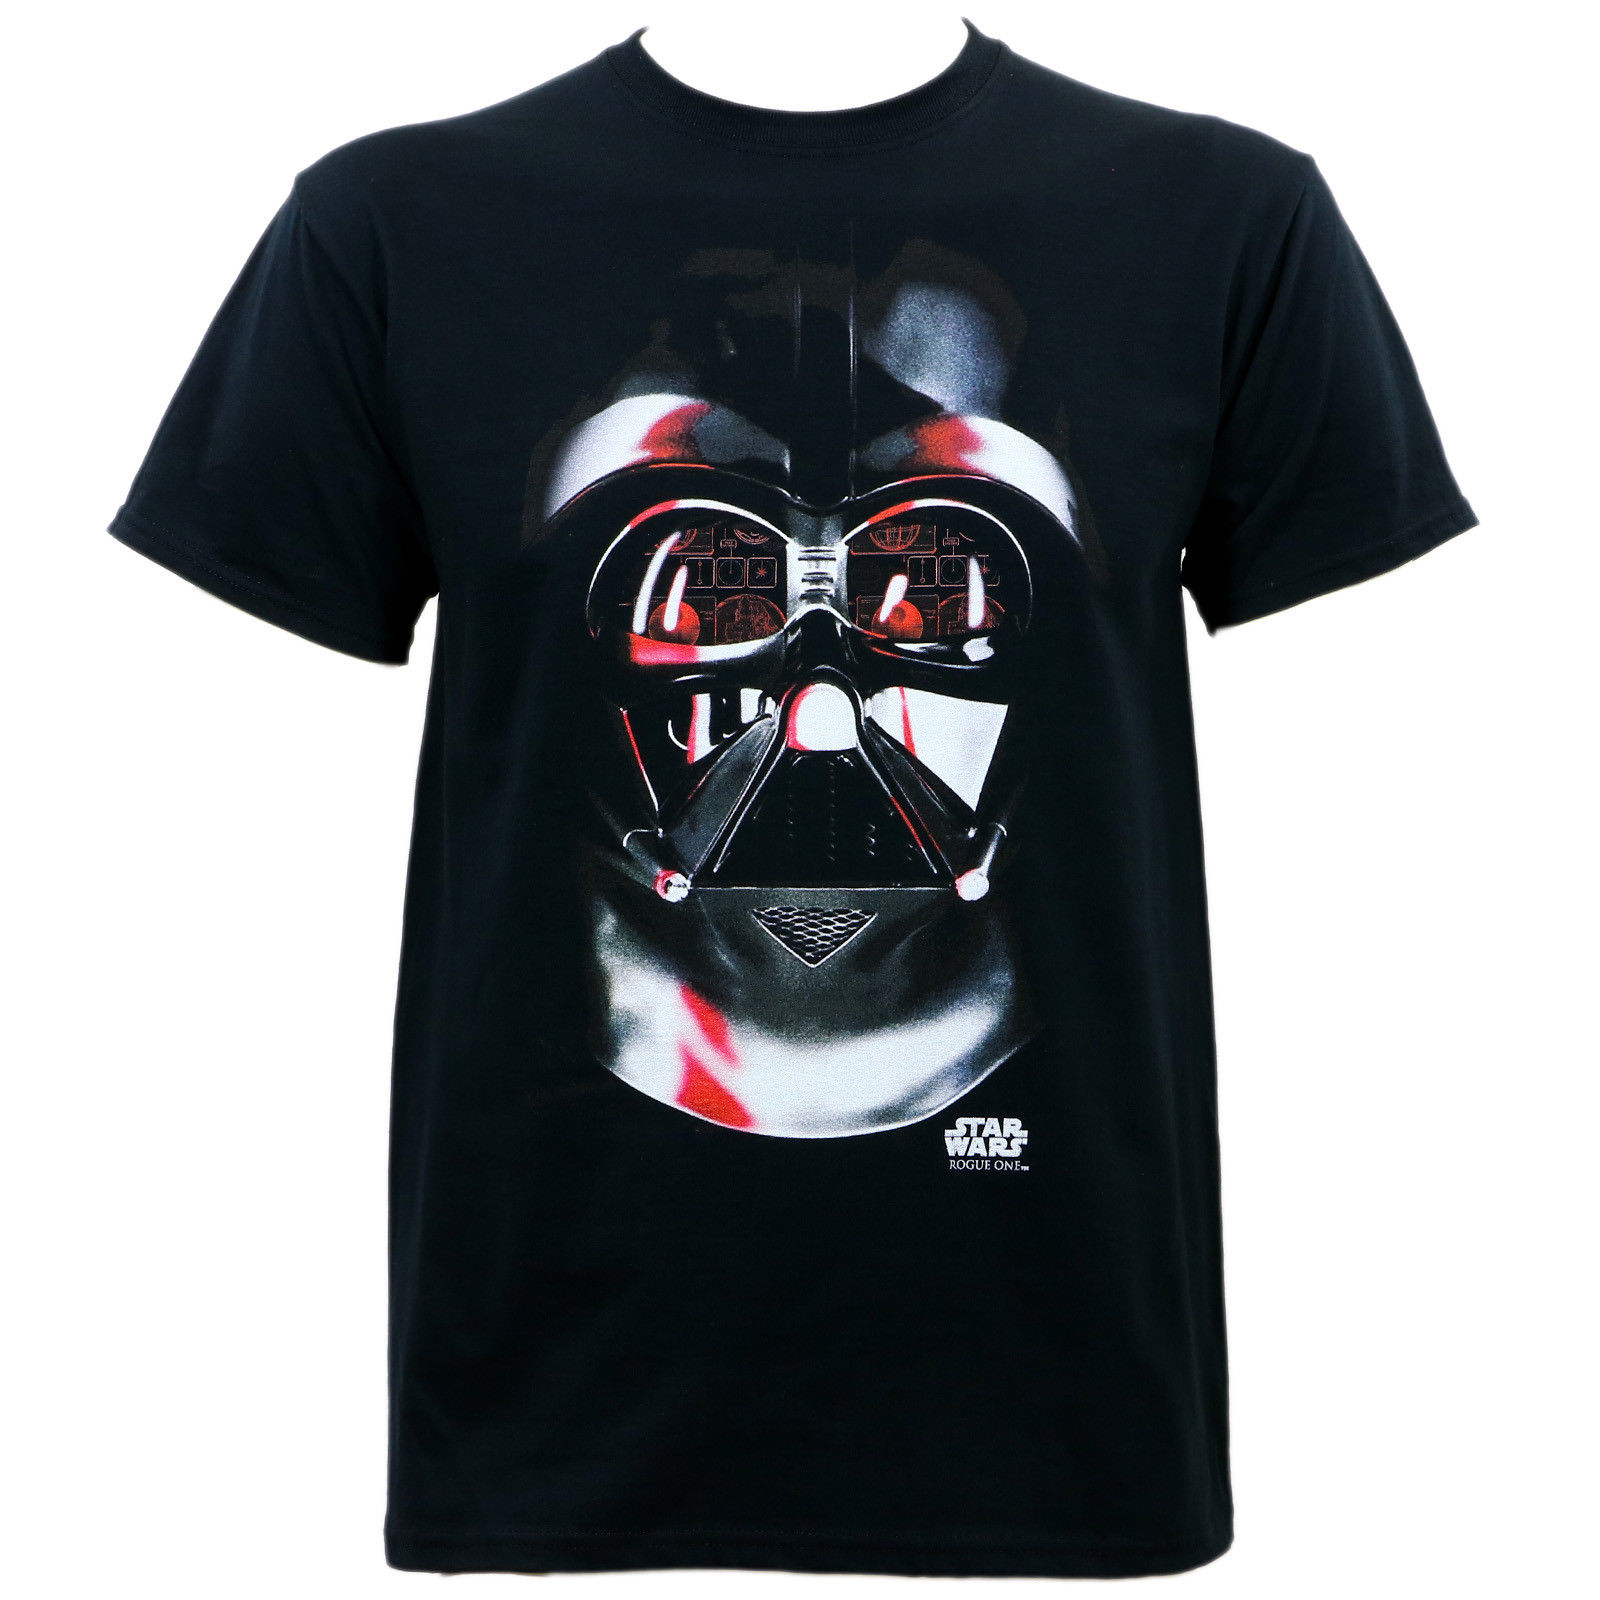 Authentic STAR WARS ROGUE ONE Lord Vader T-Shirt Black S-3XL NEW 100% Cotton Short Sleeves T Shirts Top Tee PLUS SIZE